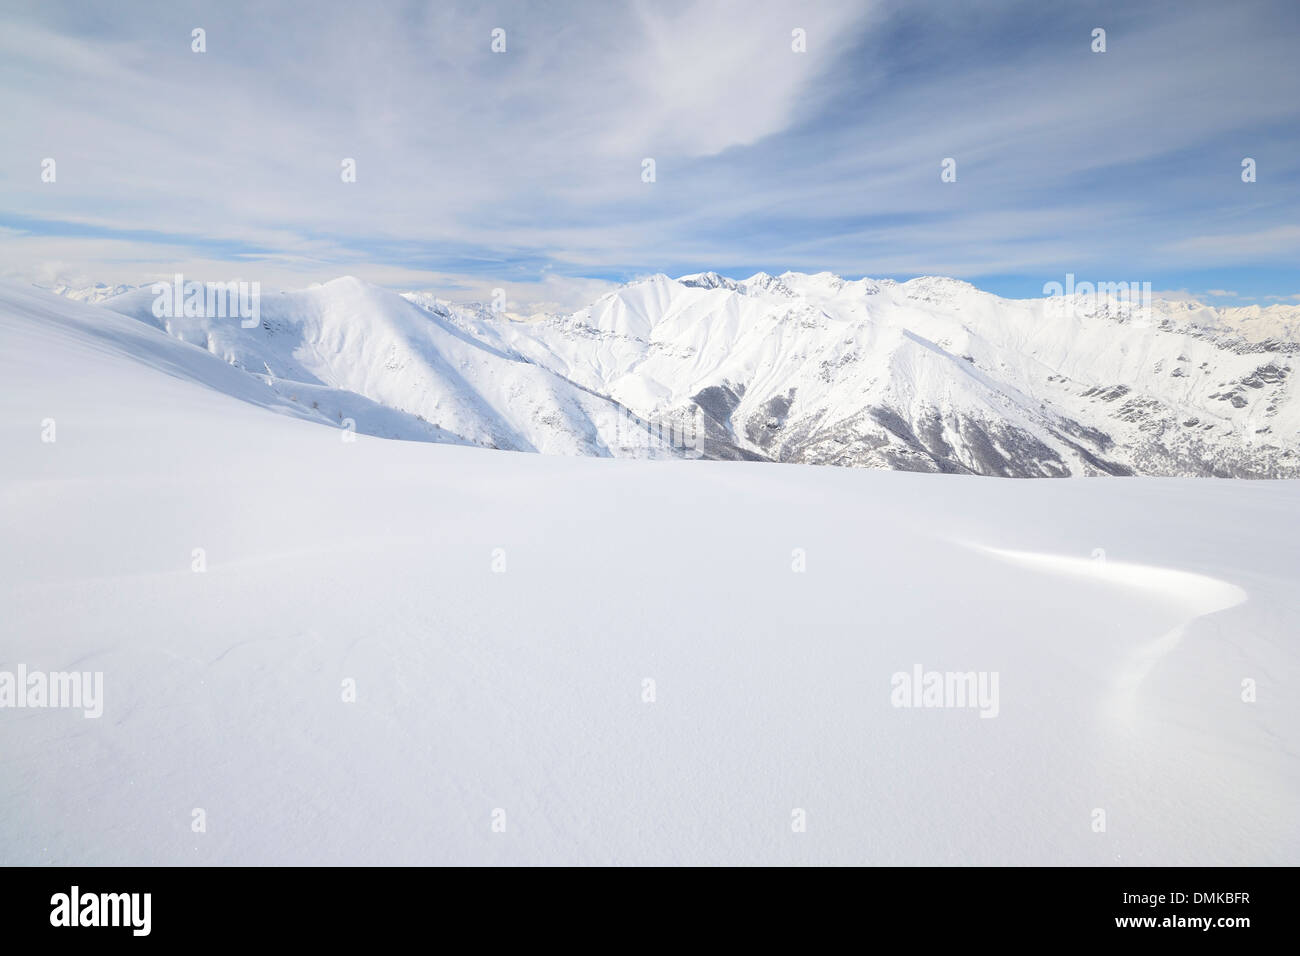 Candid off-piste ski slope in scenic background of high mountain peak - Stock Image